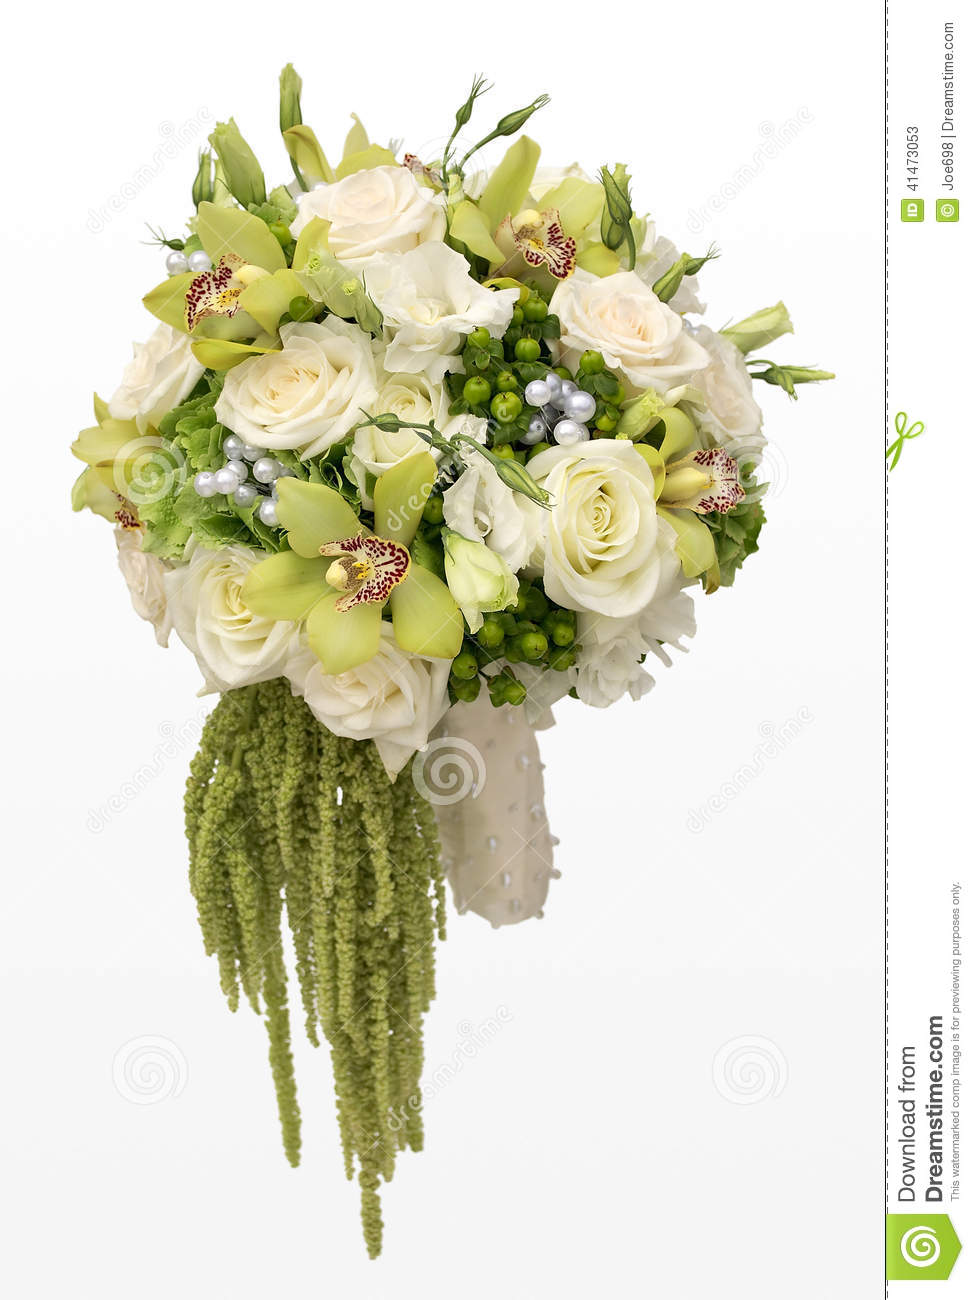 Wedding Bouquet Of White Roses And Green Orchids Stock Photo - Image: 41473053